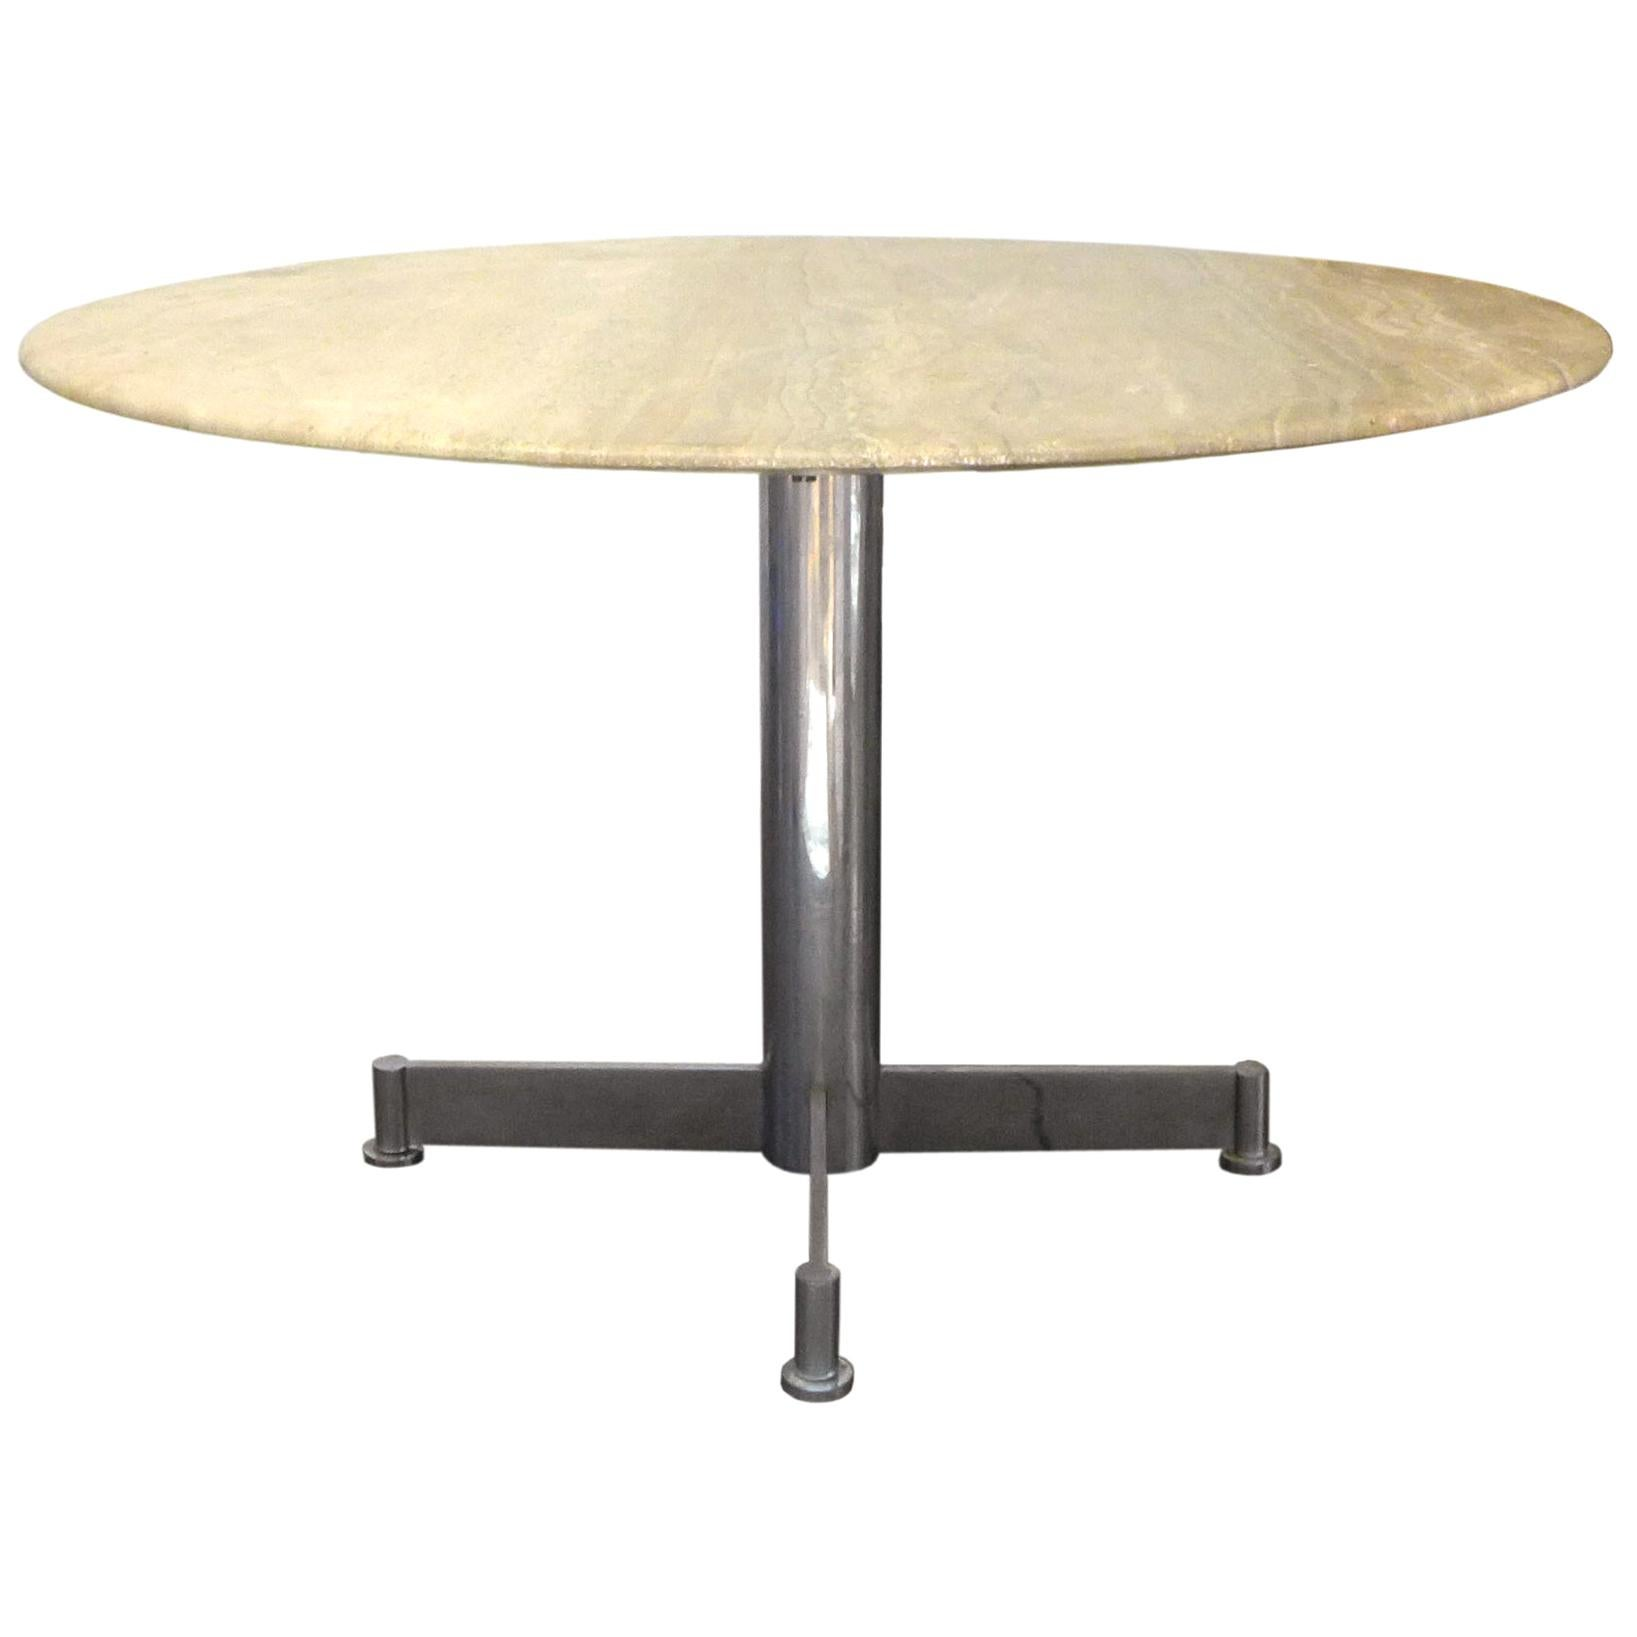 Travertine & Chrome Steel Round Dining Table